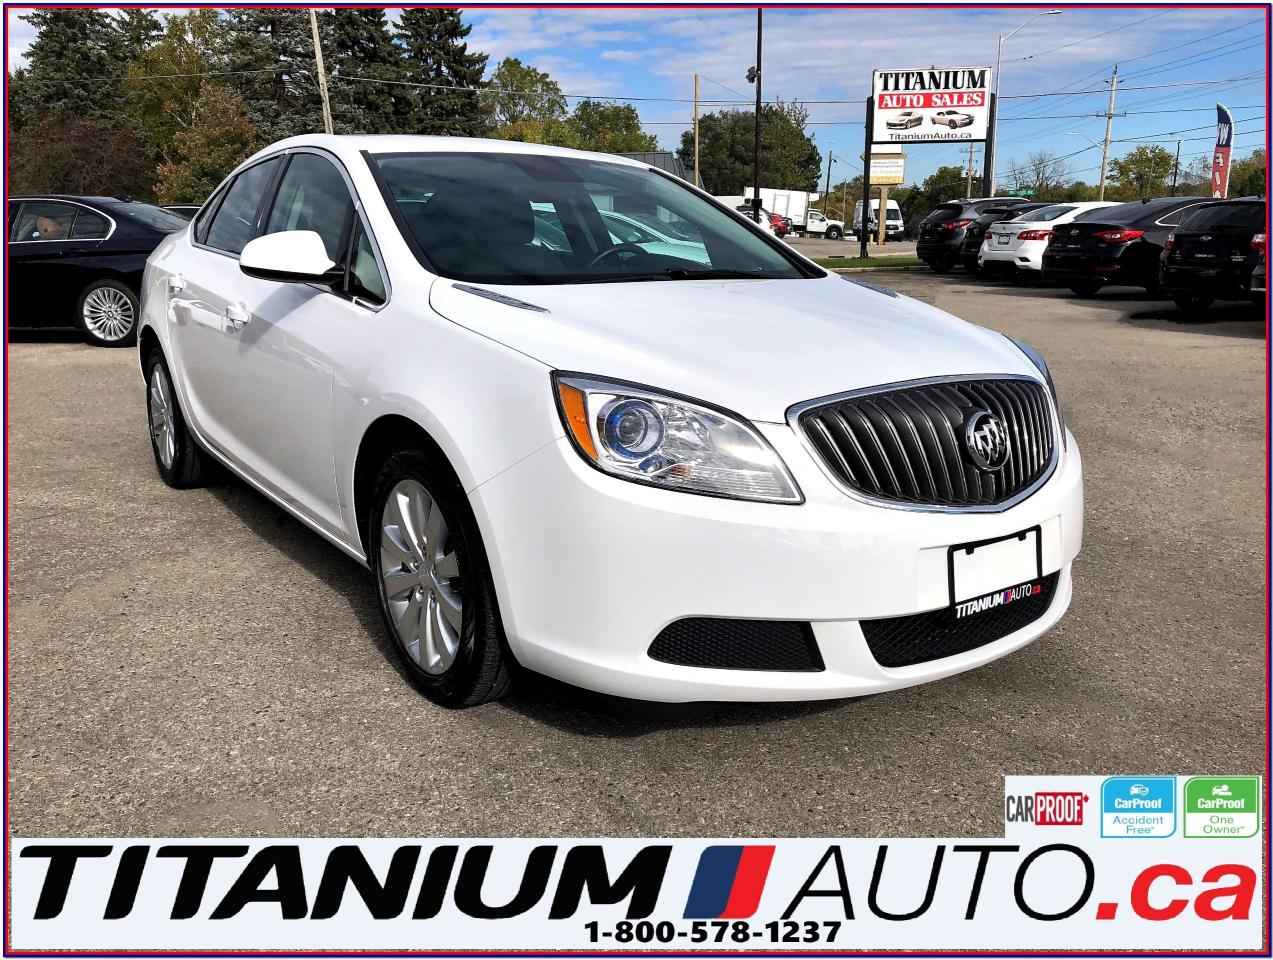 Used 2016 Buick Verano Camera Heated Power Seats Remote Start Eco Xm Rear View For Sale In London Ontario